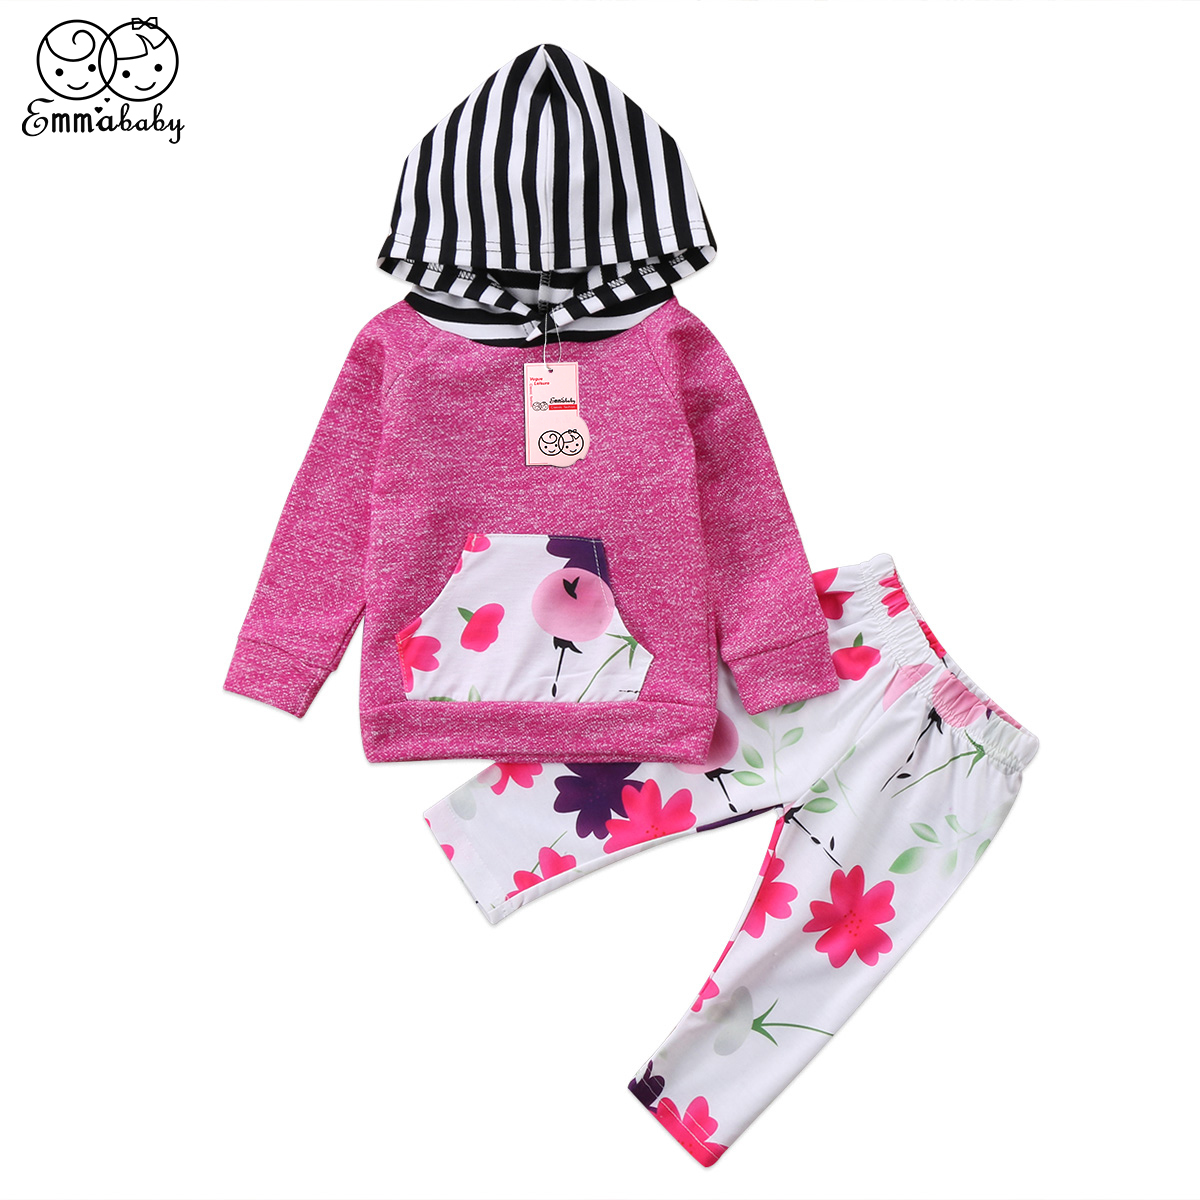 Black Friday Deals Spring Autumn Floral Outfit Newborn Infant Baby Girls Hooded Tops T-shirt Floral Leggings Outfit Set Clothes image